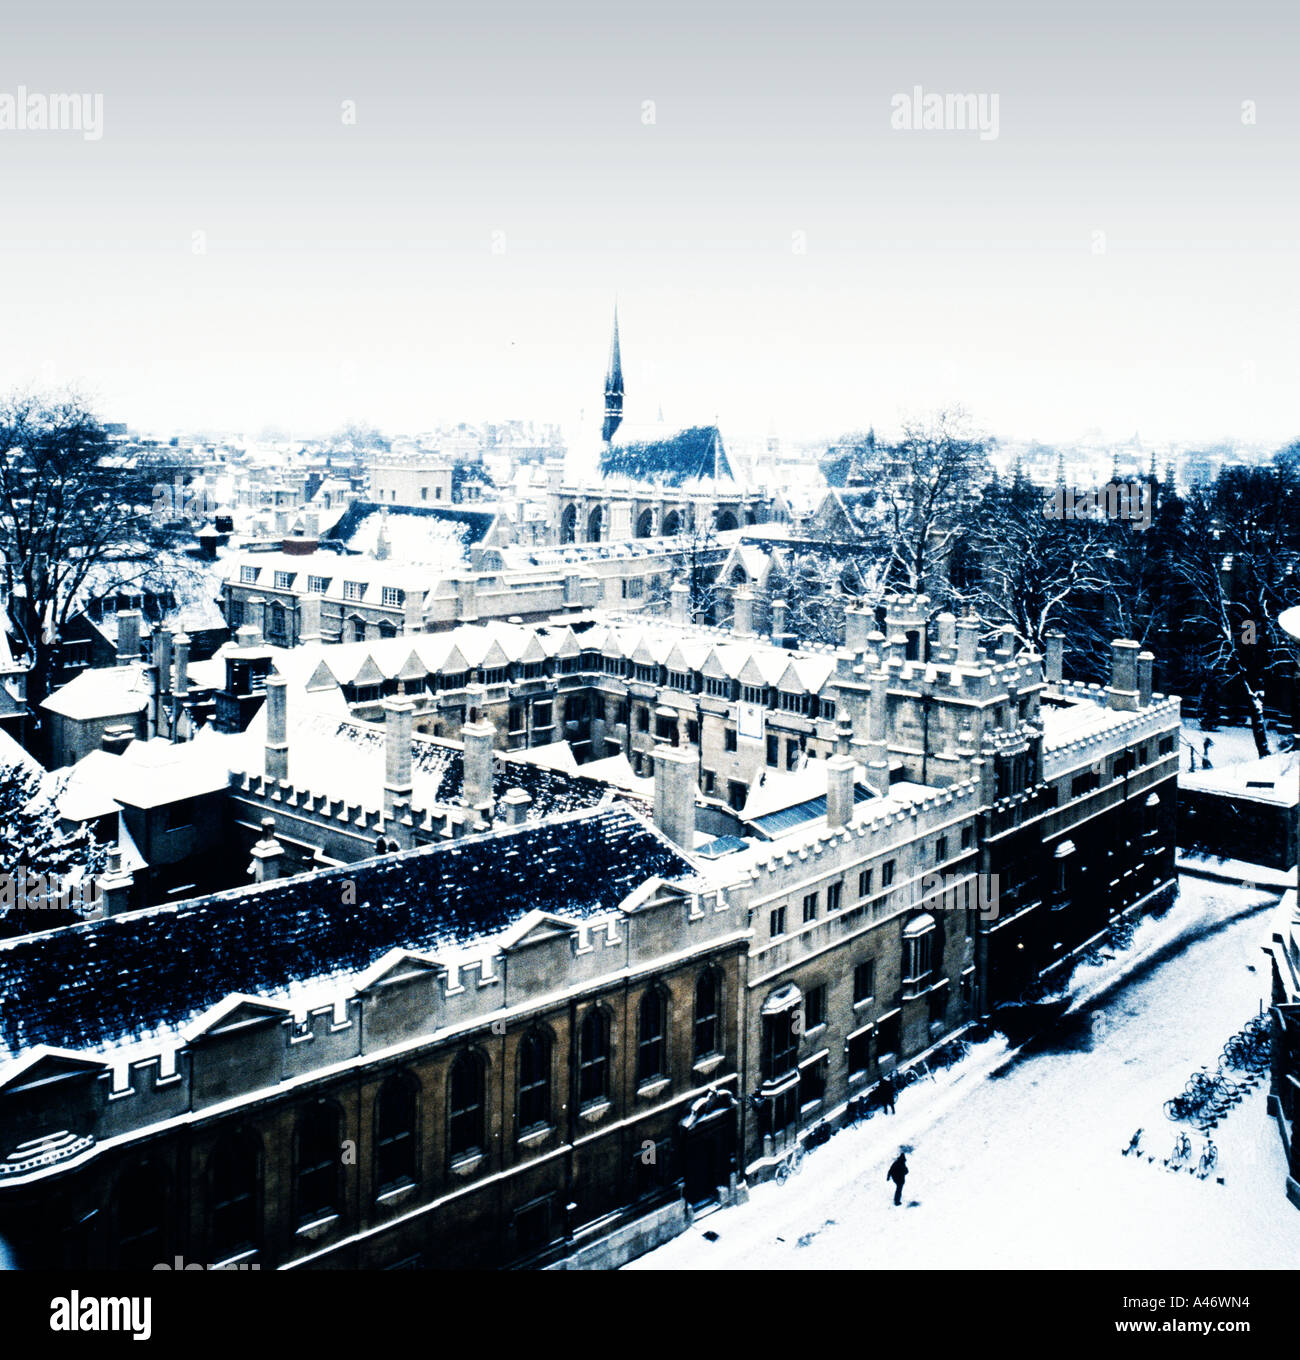 Oxford, England in the snow - Stock Image